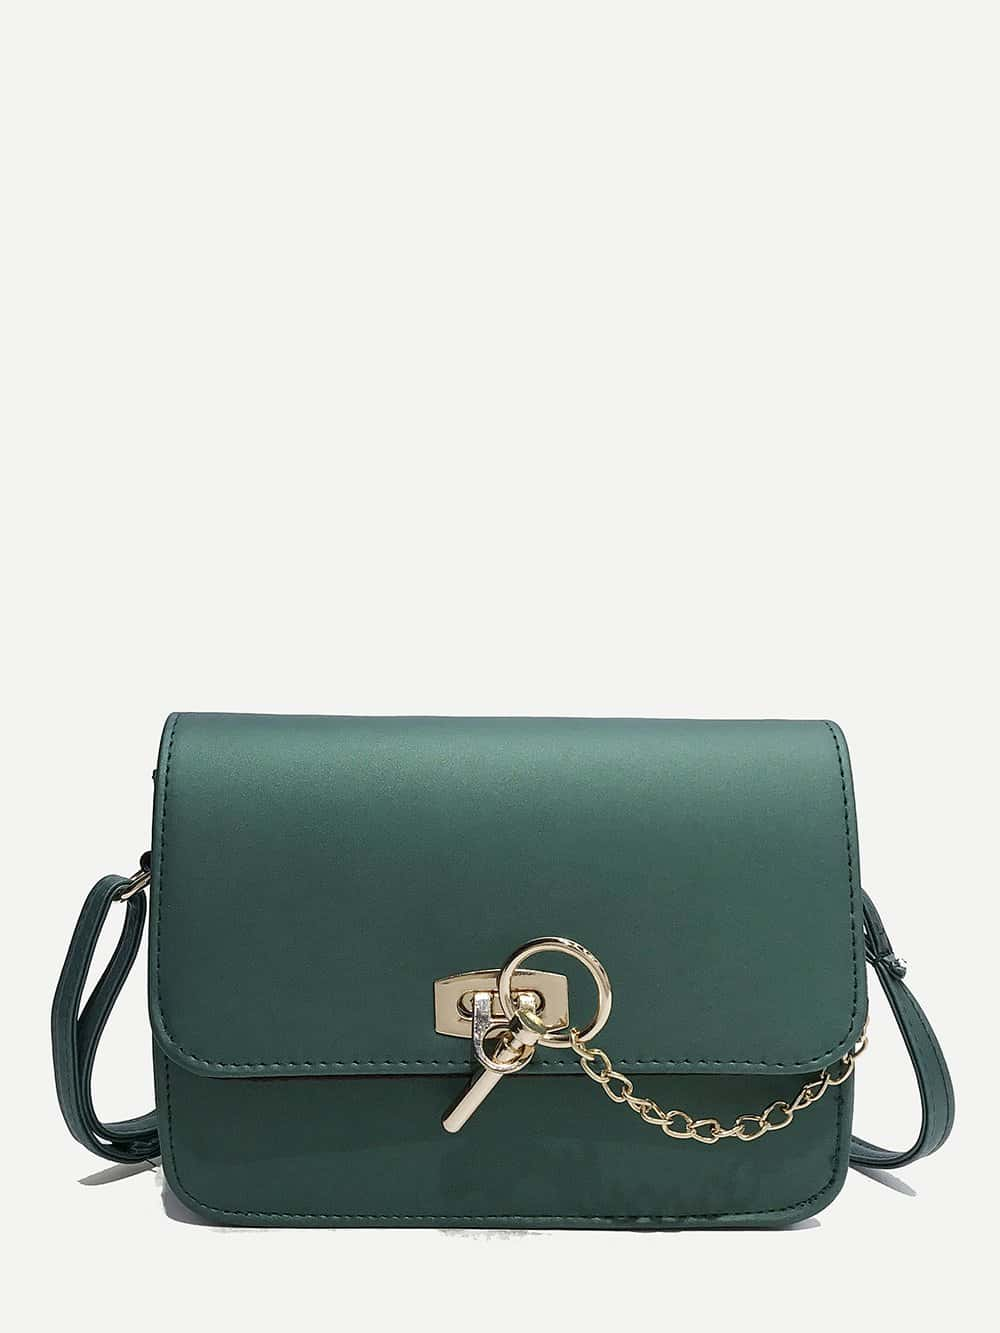 PU Flap Chain Crossbody Bag flap pu chain bag